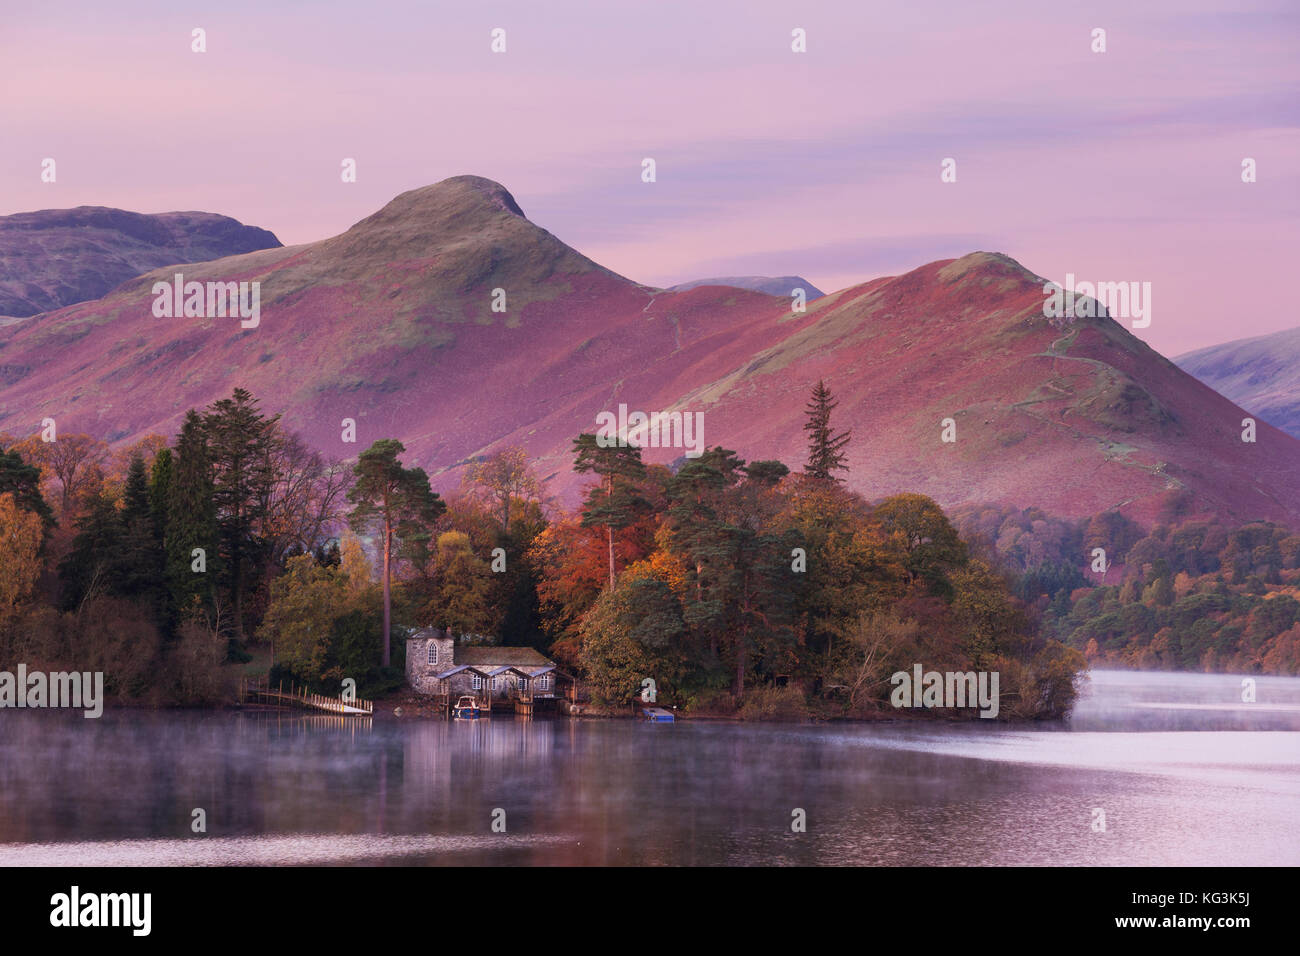 View of Catbells and Derwent Water, near Keswick, Lake District, UK - Stock Image